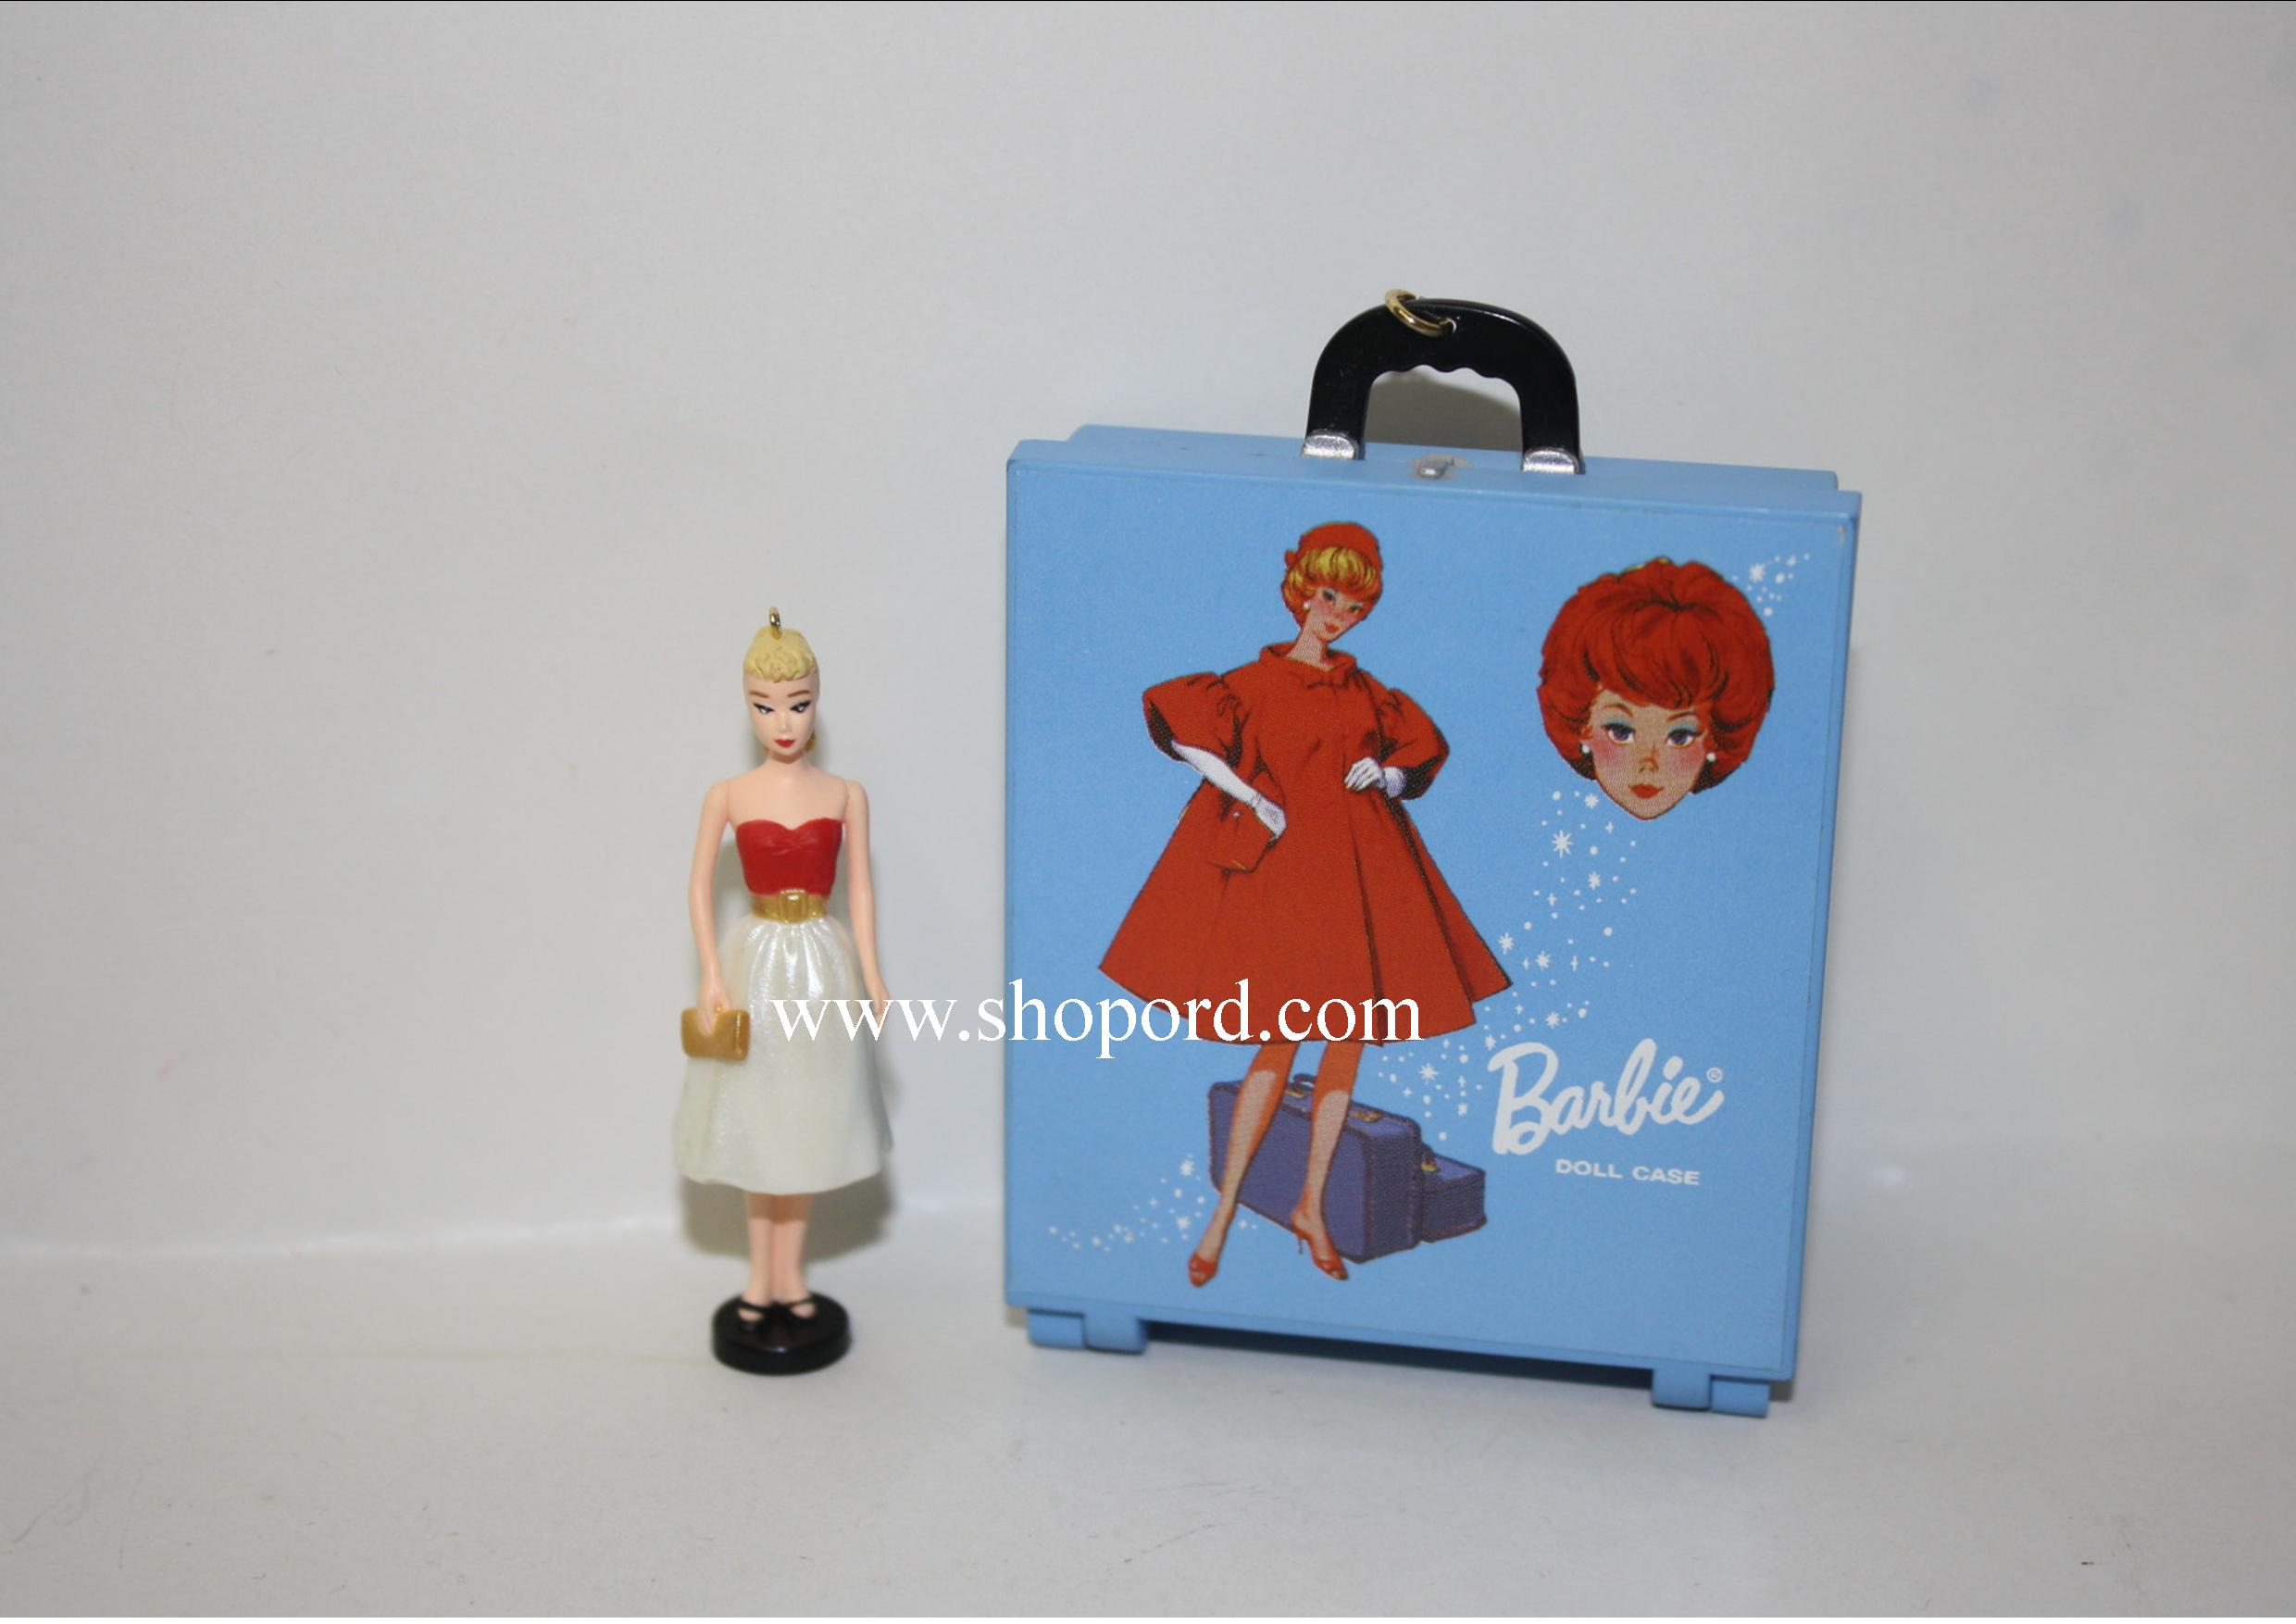 Hallmark 2000 Barbie Silken Flame Miniature Ornament And Travel Case Set of 2 QXM6031